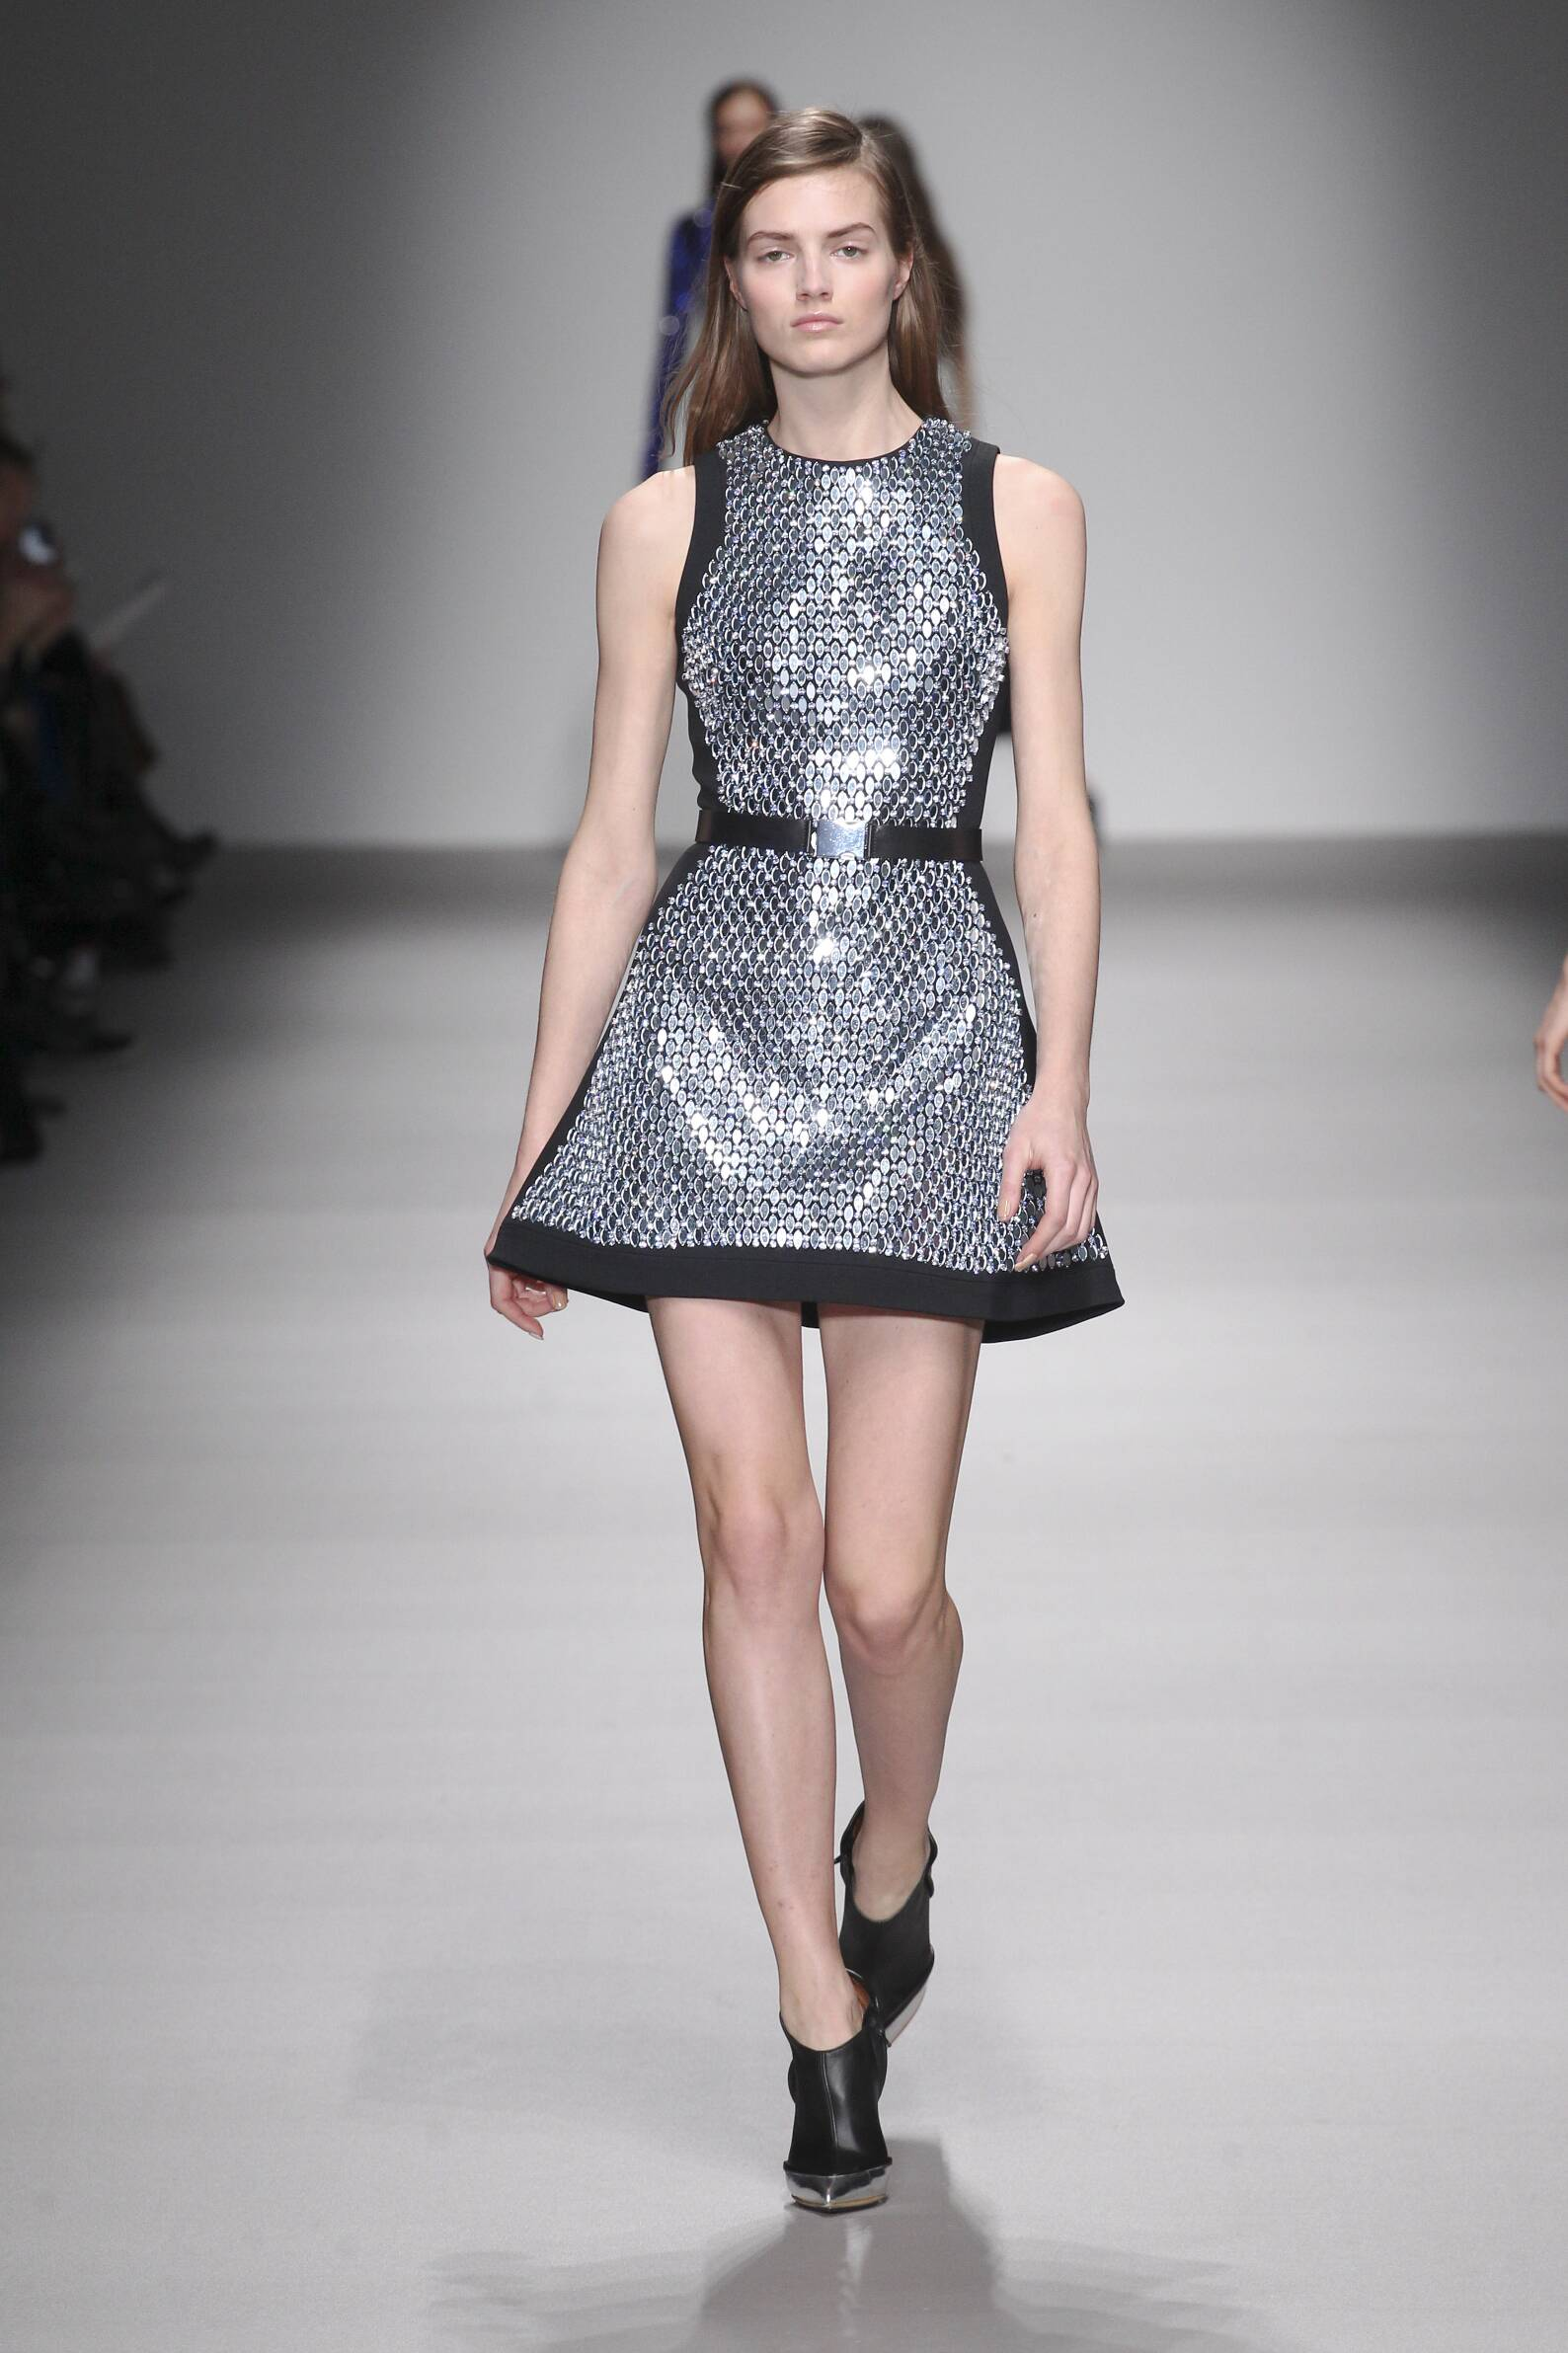 Catwalk David Koma Fall Winter 2015 16 Women's Collection London Fashion Week